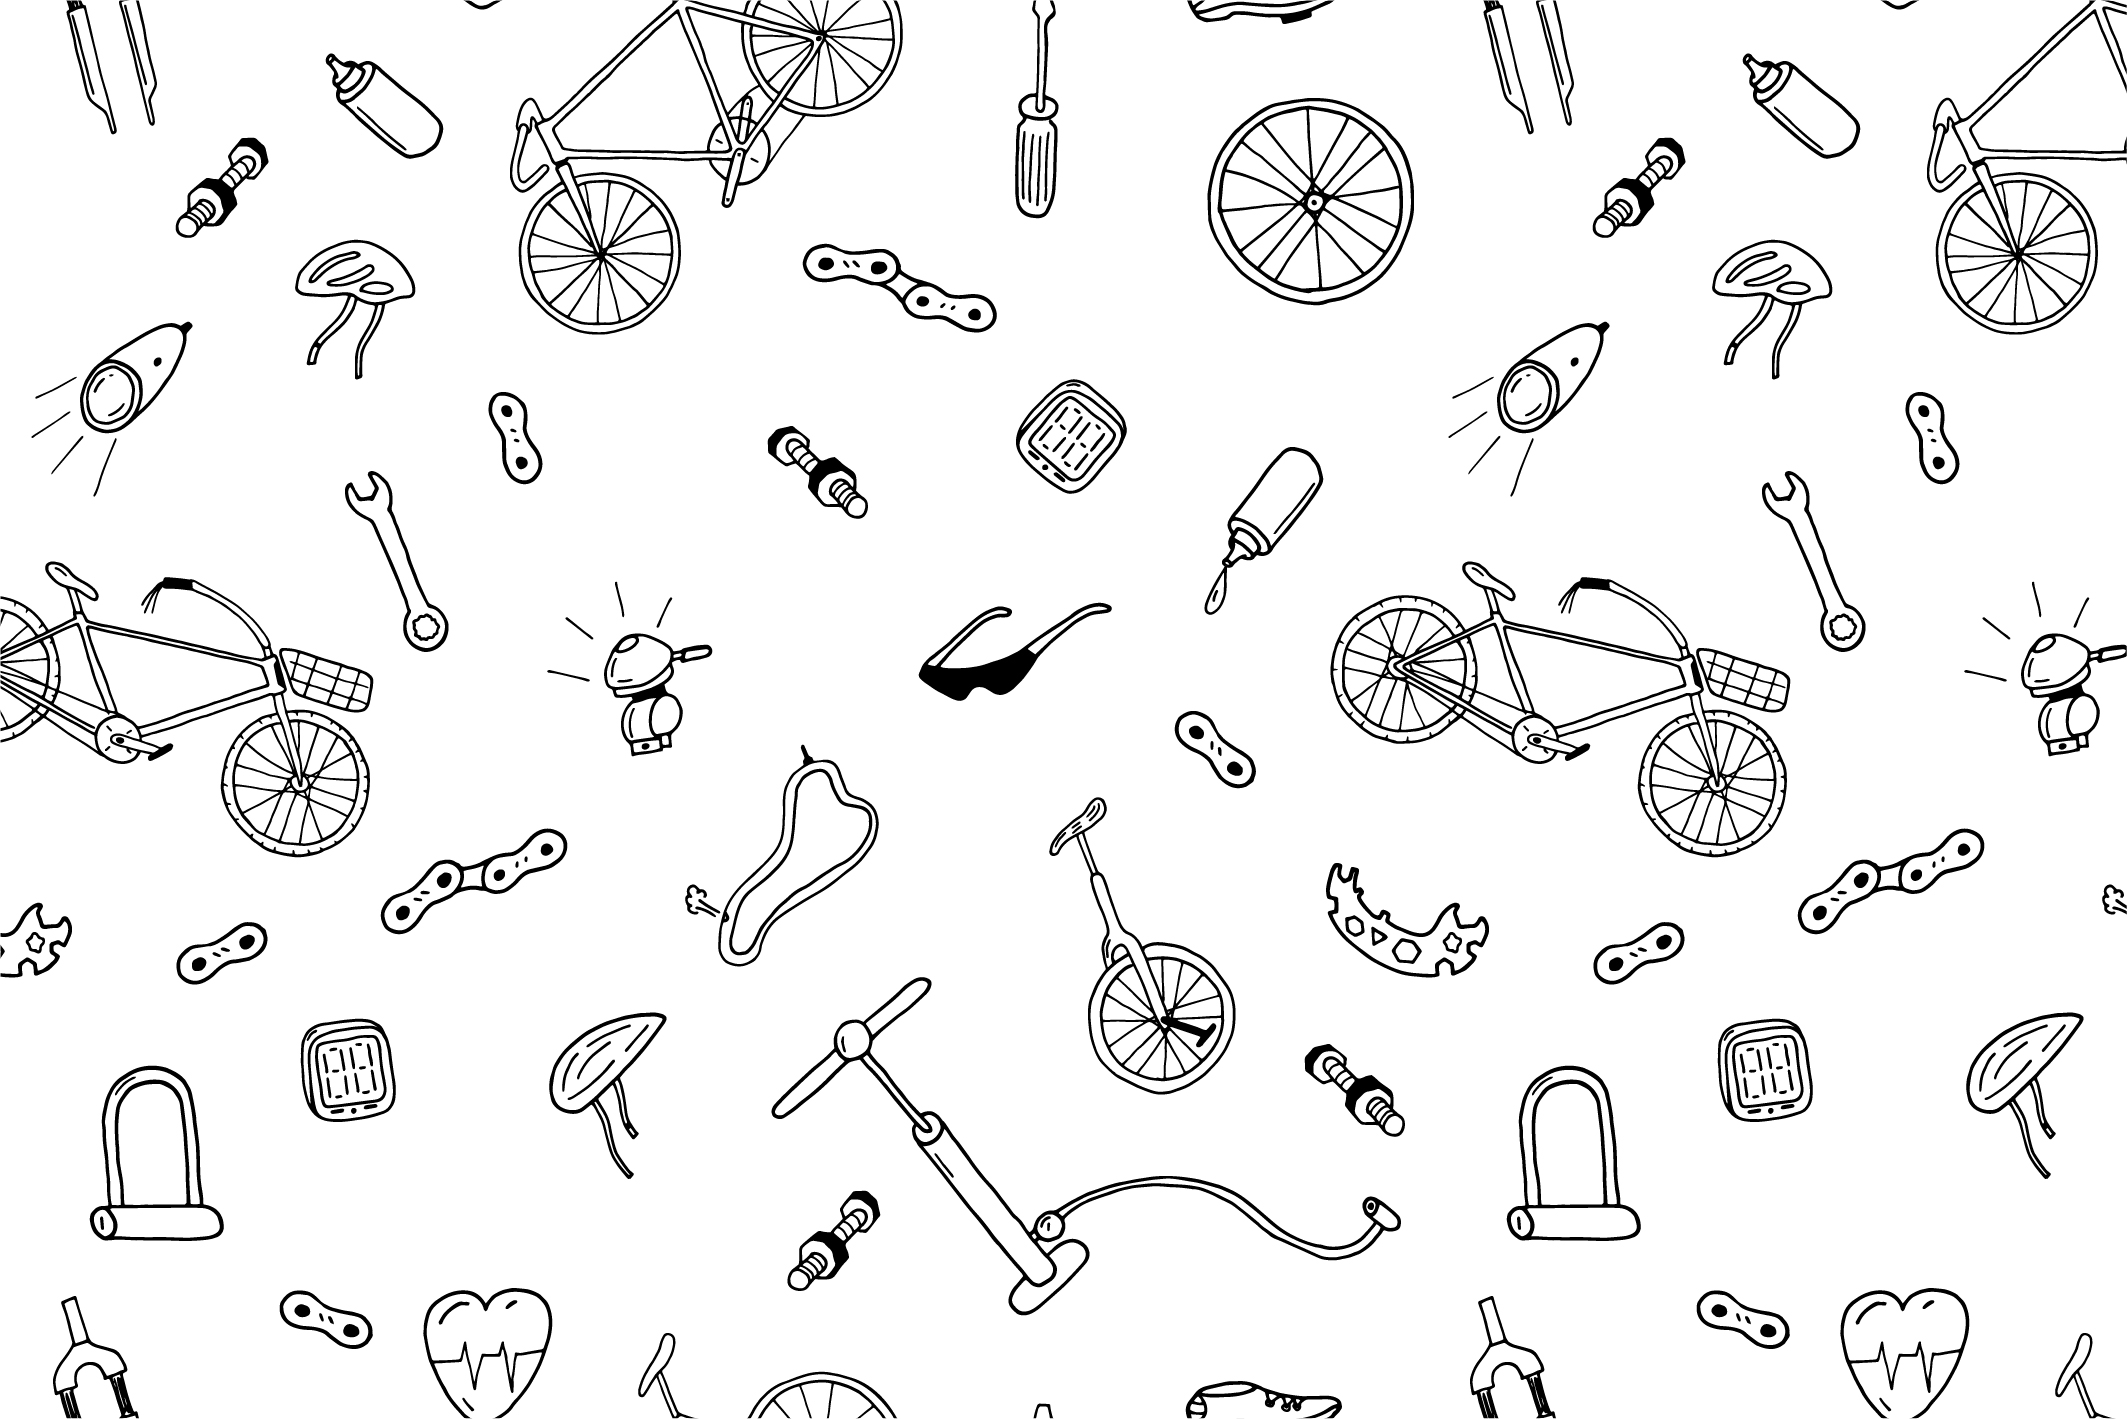 Bicycle collection in doodle style example image 5